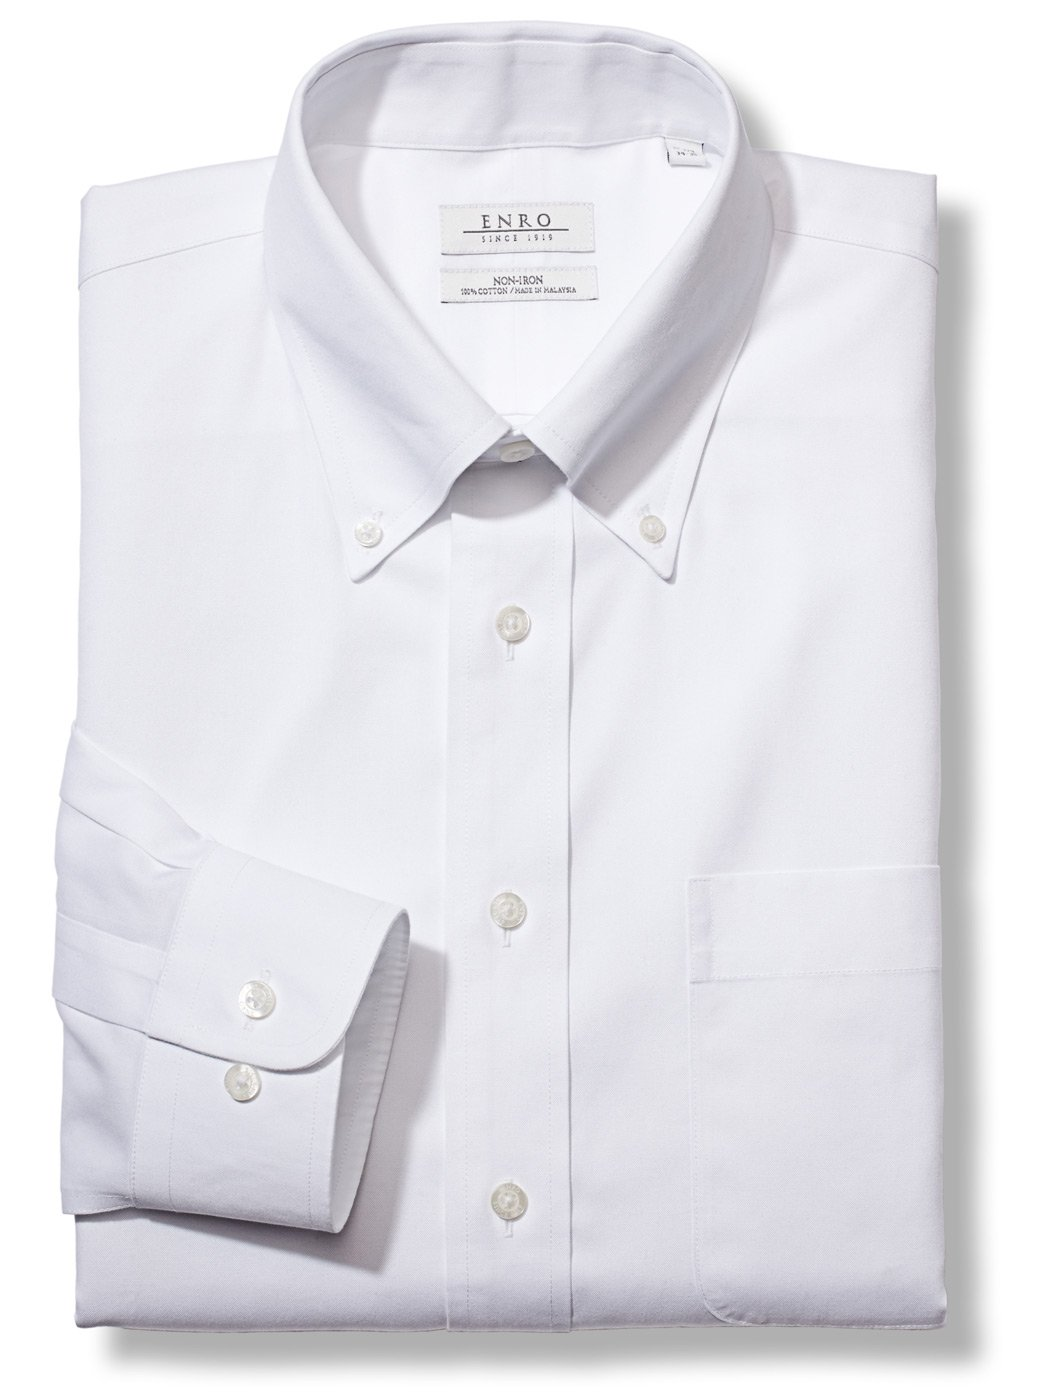 Enro Men's Big and Tall Classic Fit Solid Button Down Collar Dress Shirt, White, 20'' Neck 36''-37'' Sleeve